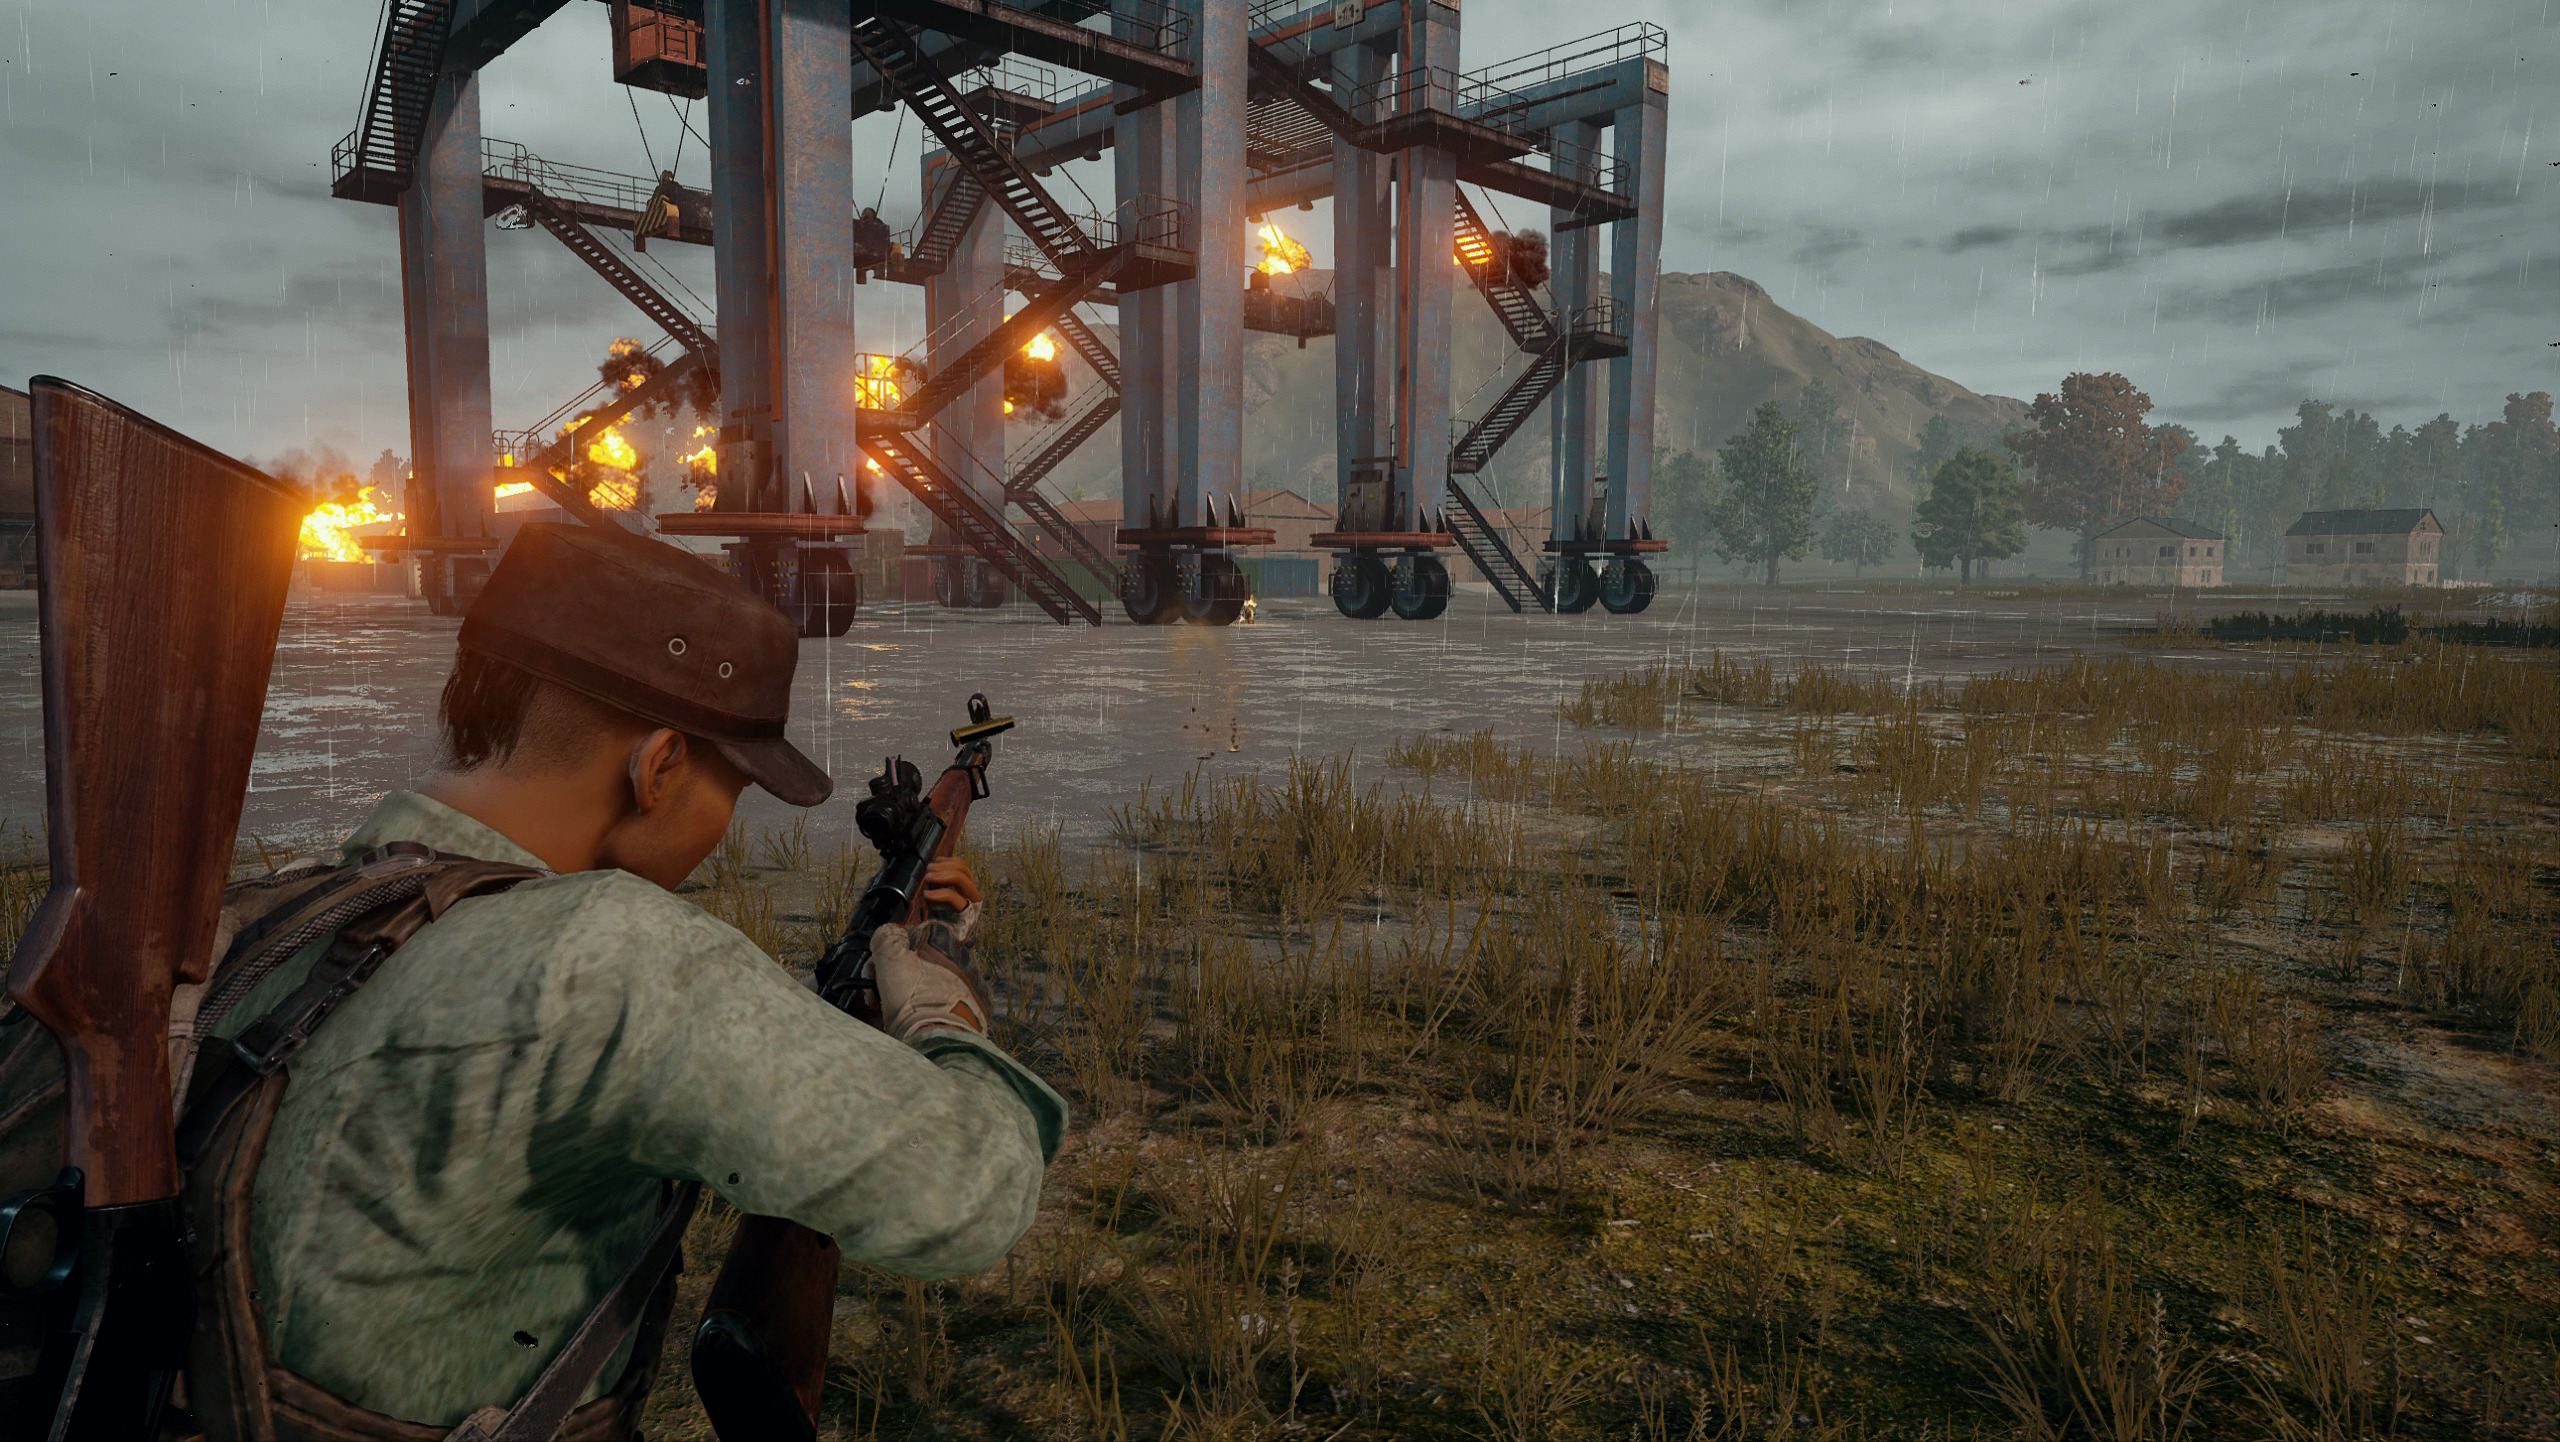 Pubg Hd For Pc: PUBG Region Lock In The Works; Testing To Be Conducted In